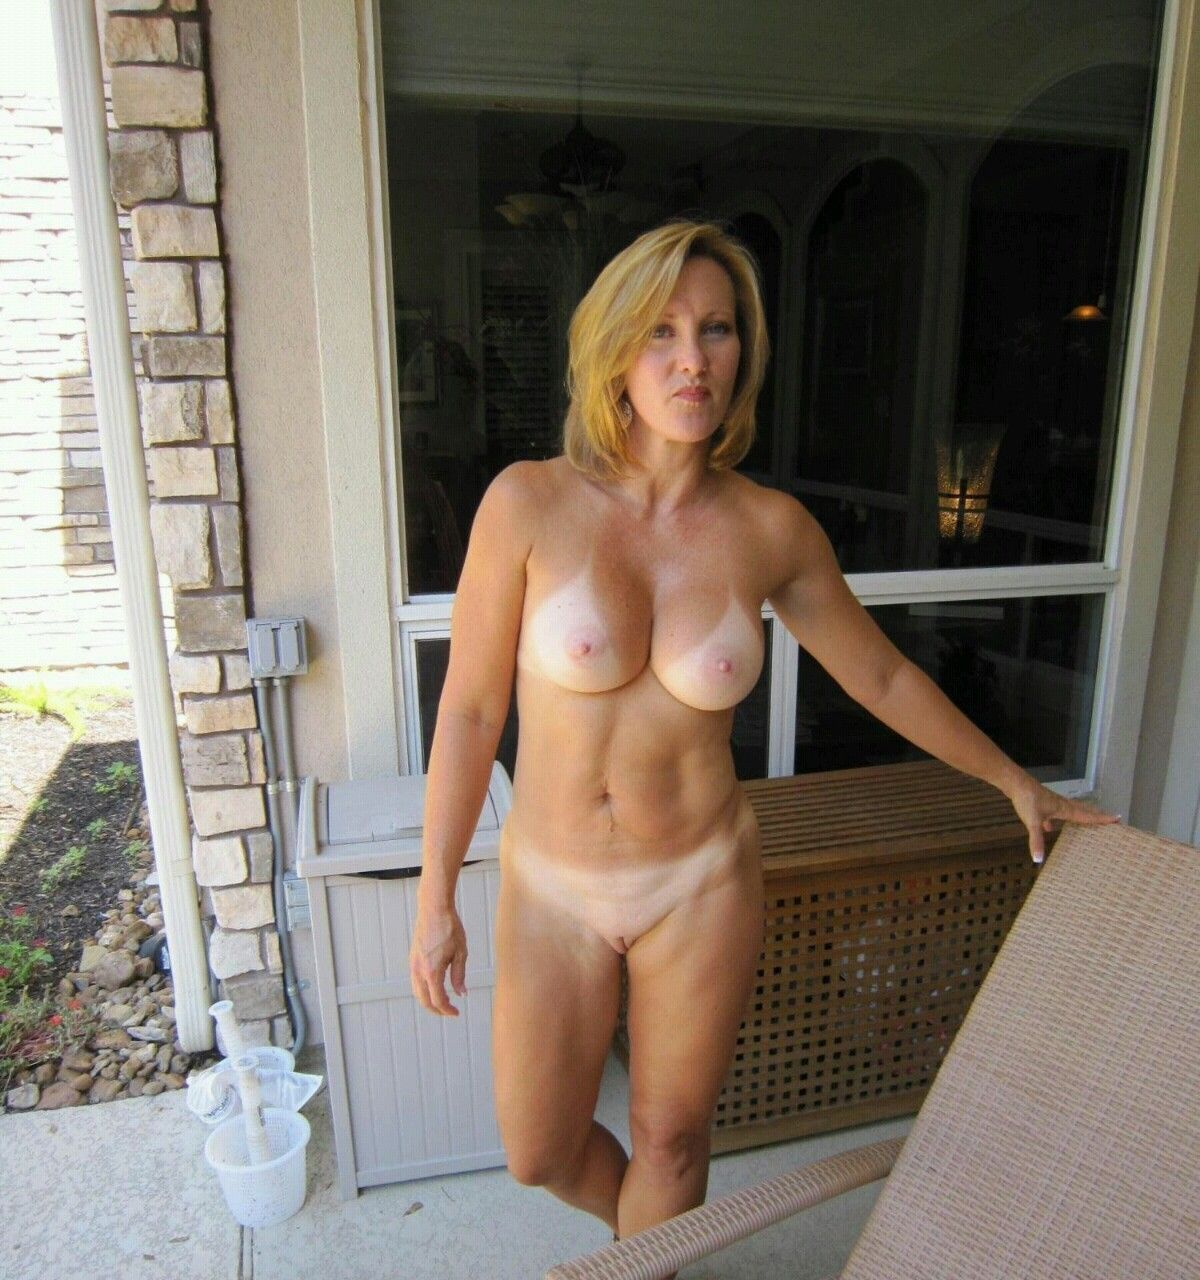 Blonde girl nude exercise